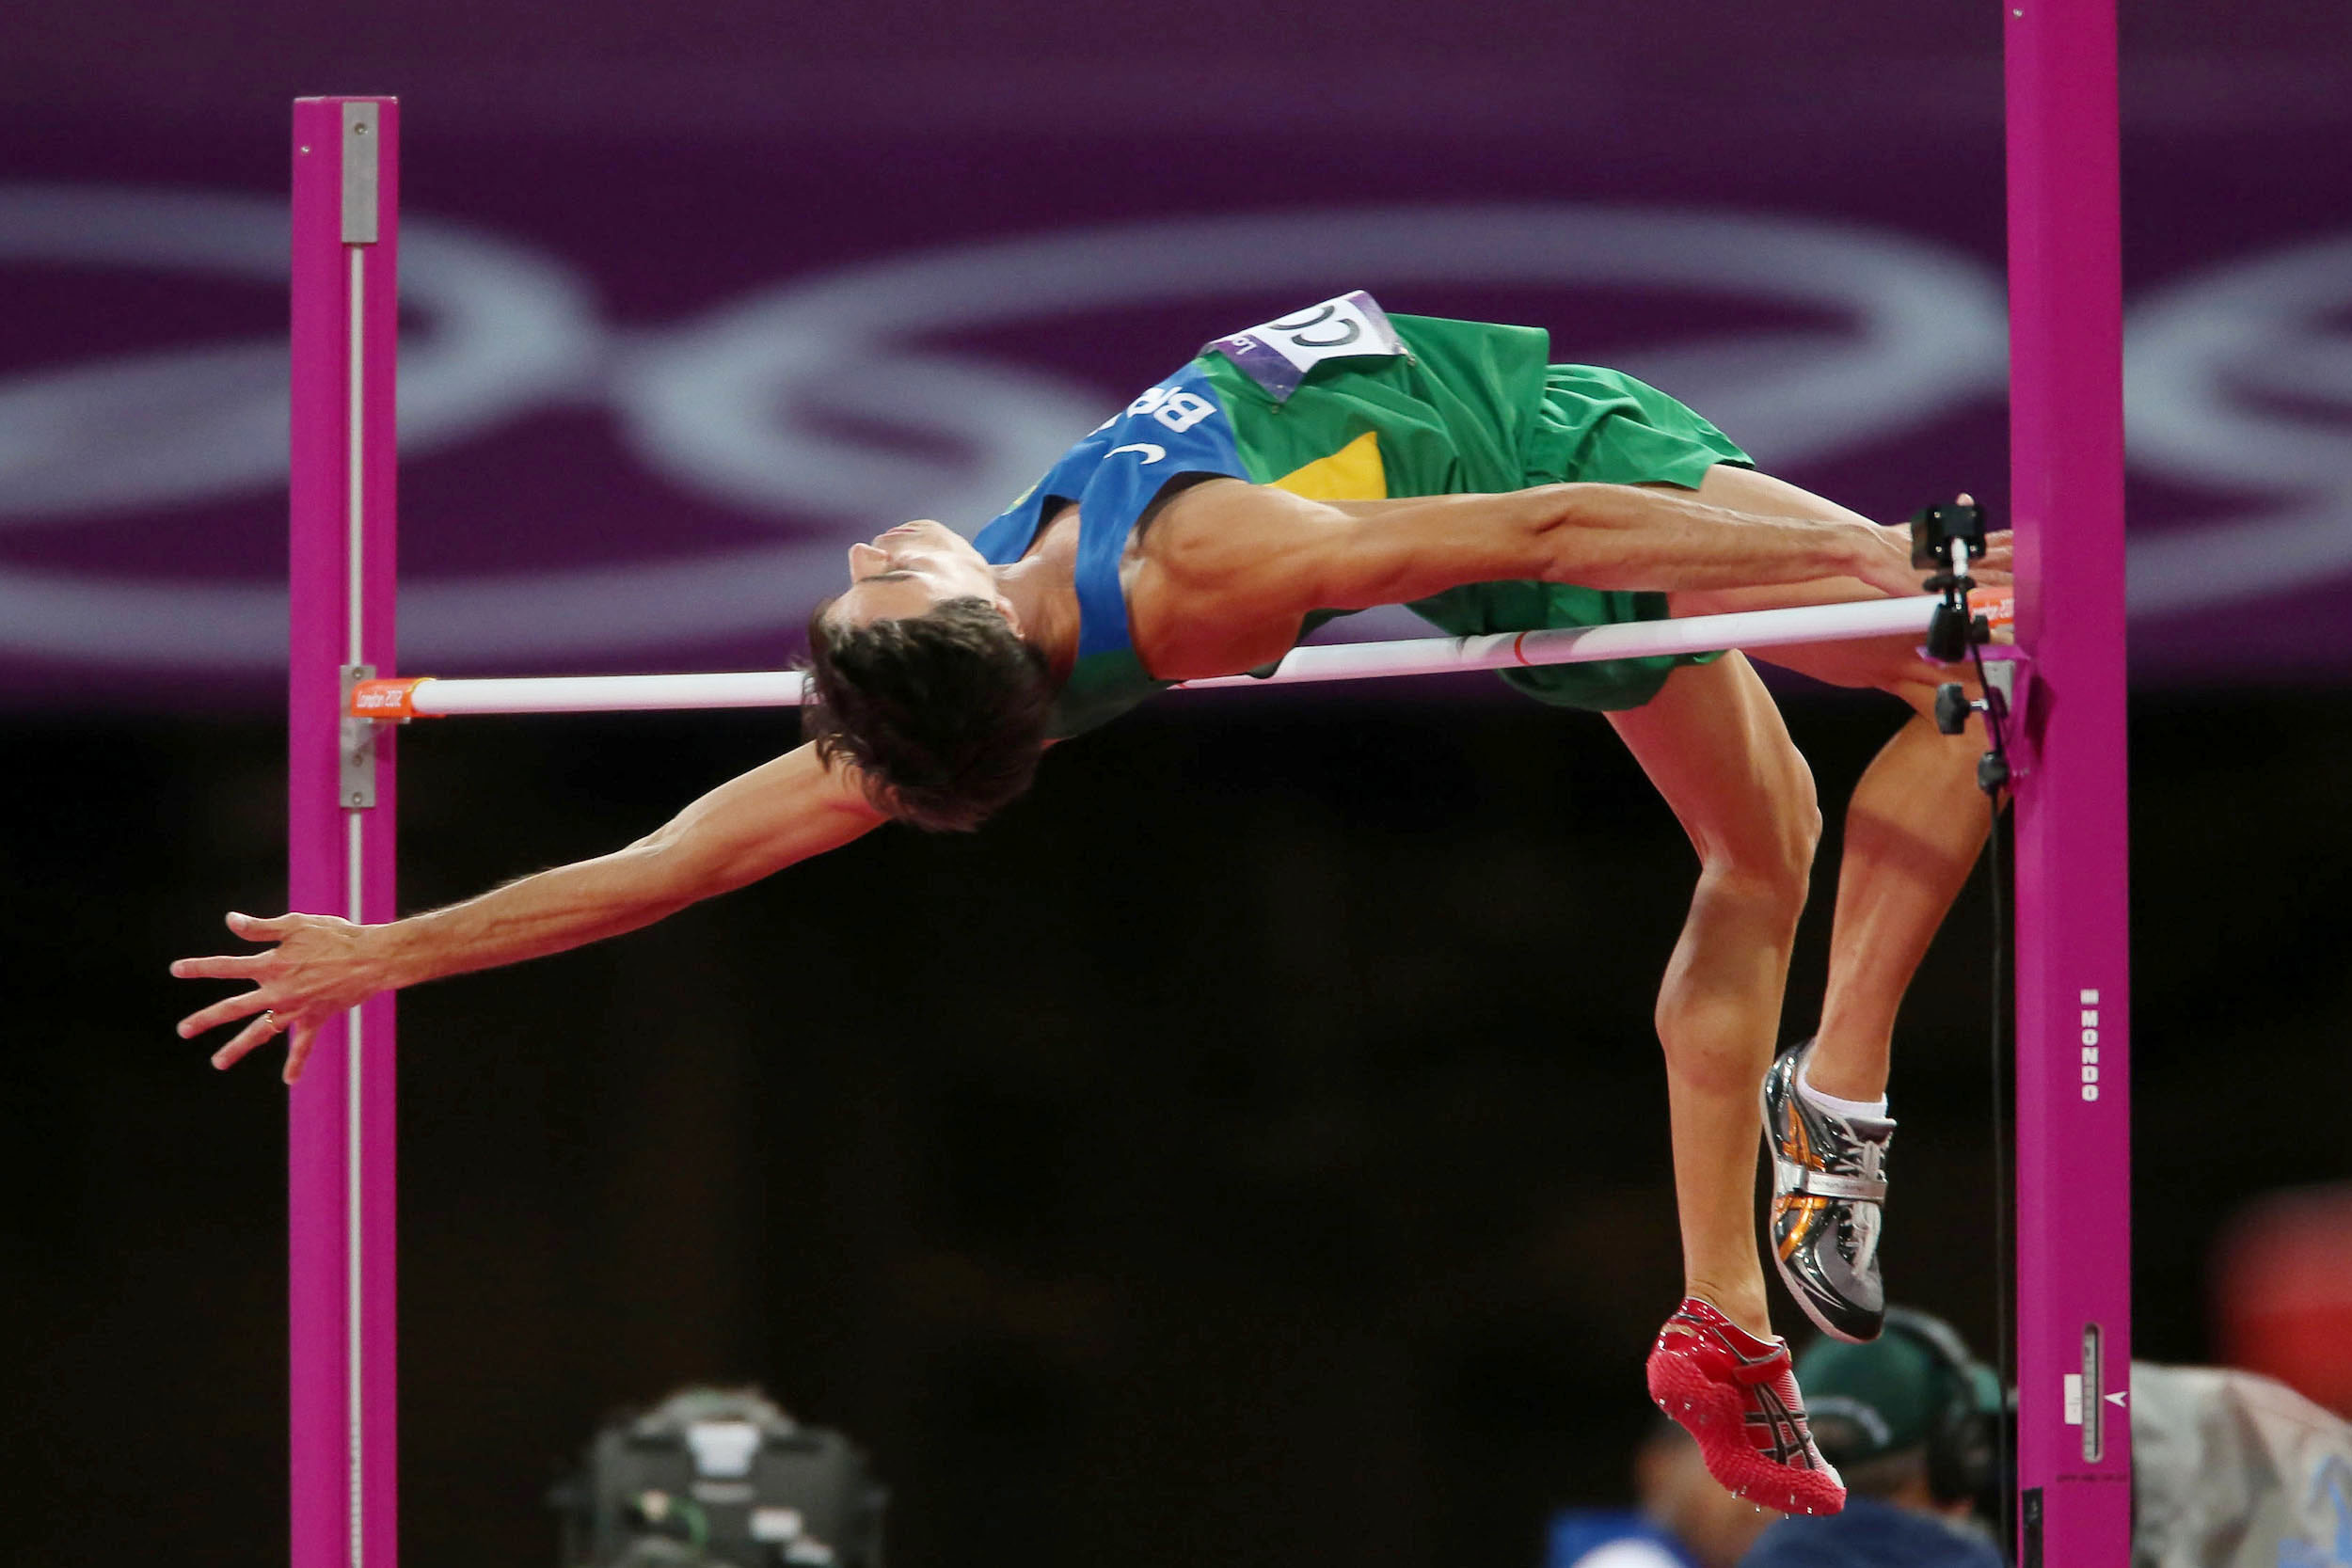 Londres 2012, Atletismo